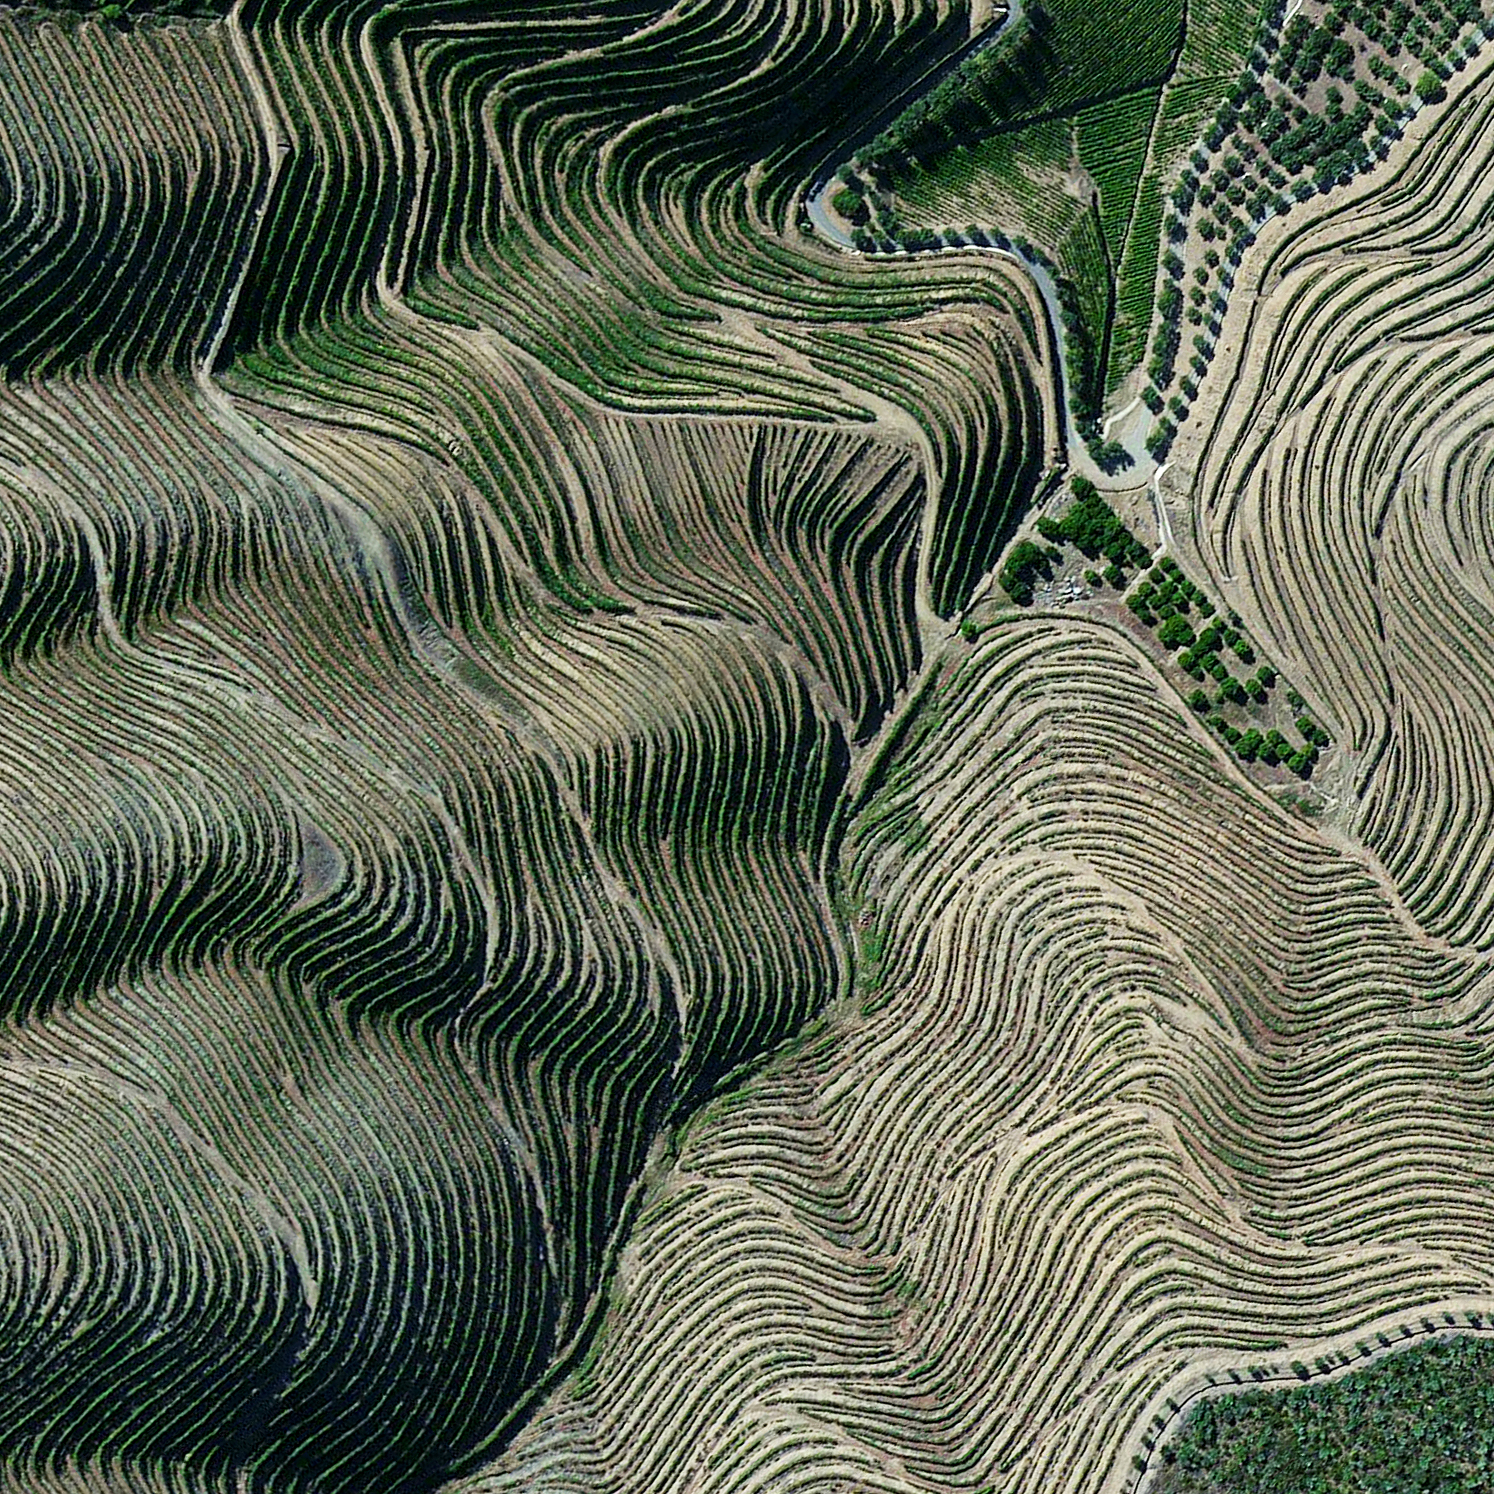 3/20/2016  Port Vineyards   Douro Valley, Portugal   41.167121280°, -7.773068522°    Terraced hillsides are seen in the Douro Valley of northern Portugal. The steep slopes are covered with of grape vines that rise from the Douro River below. The region is recognized as the home of port wine - a sweet, red wine that is often served with dessert.